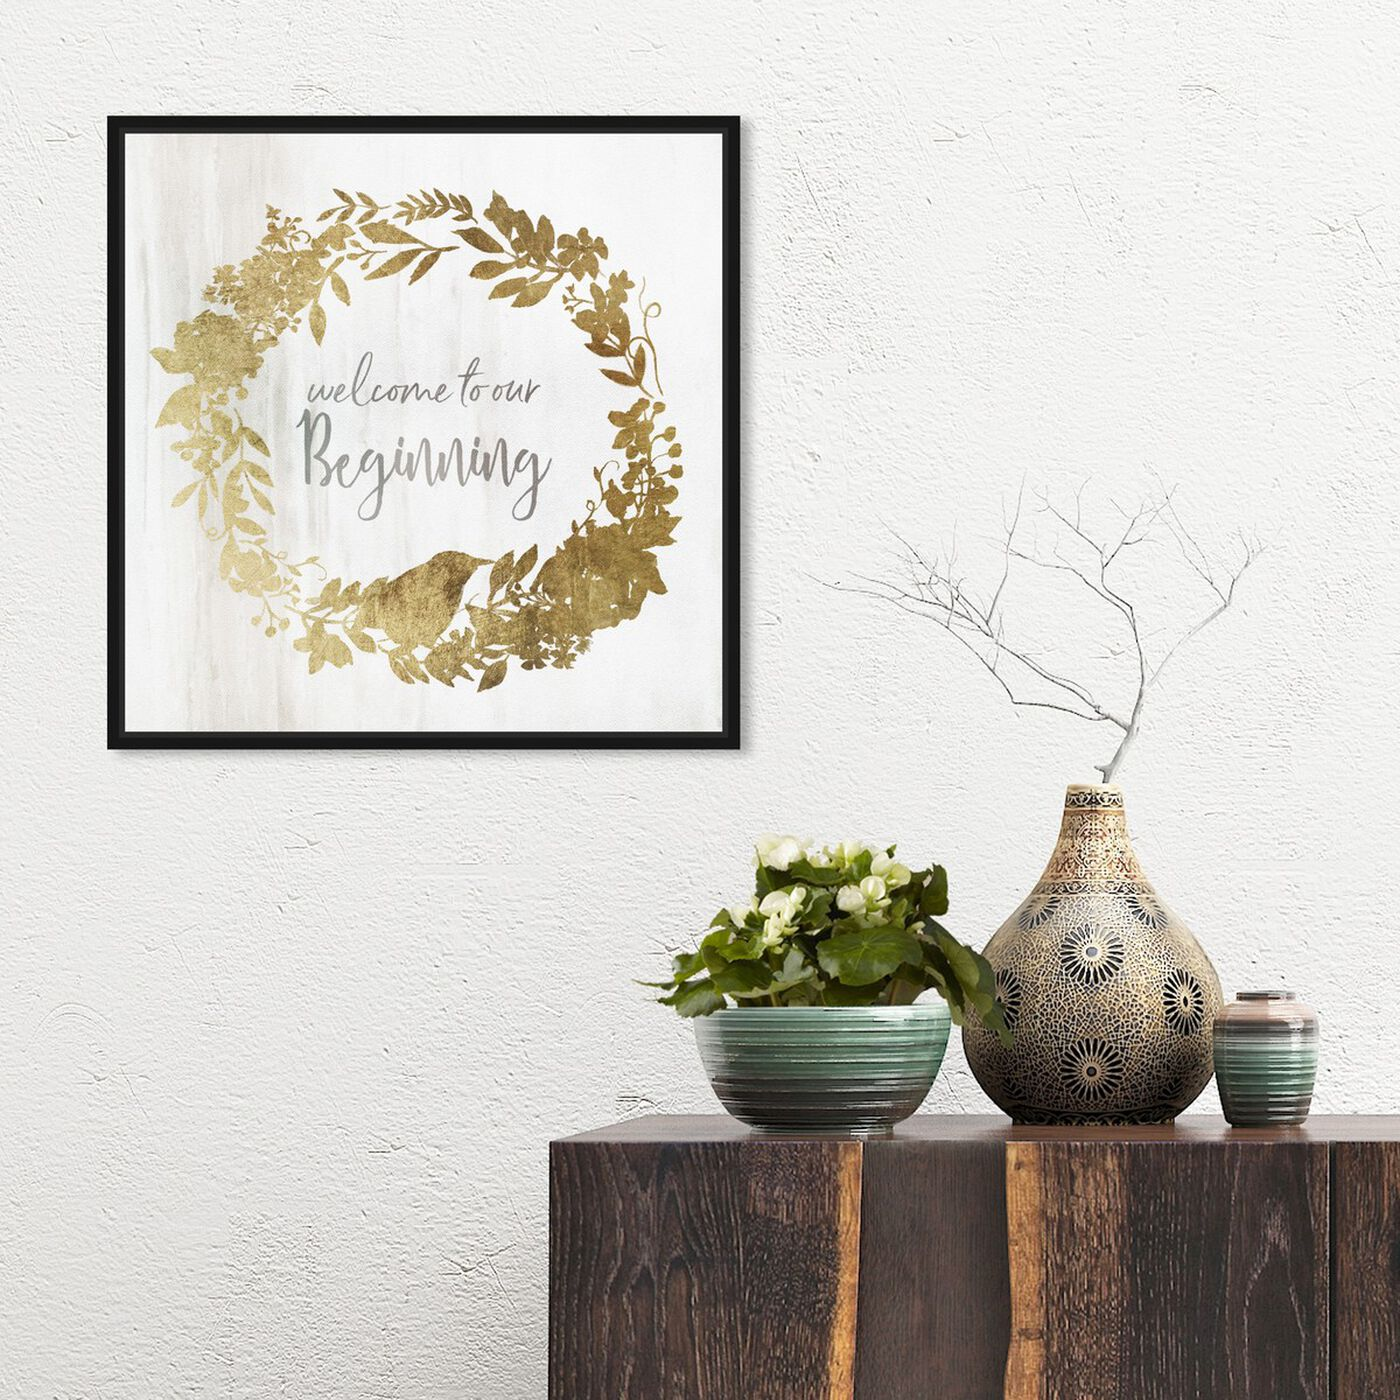 Hanging view of Welcome to our Beginning featuring typography and quotes and love quotes and sayings art.